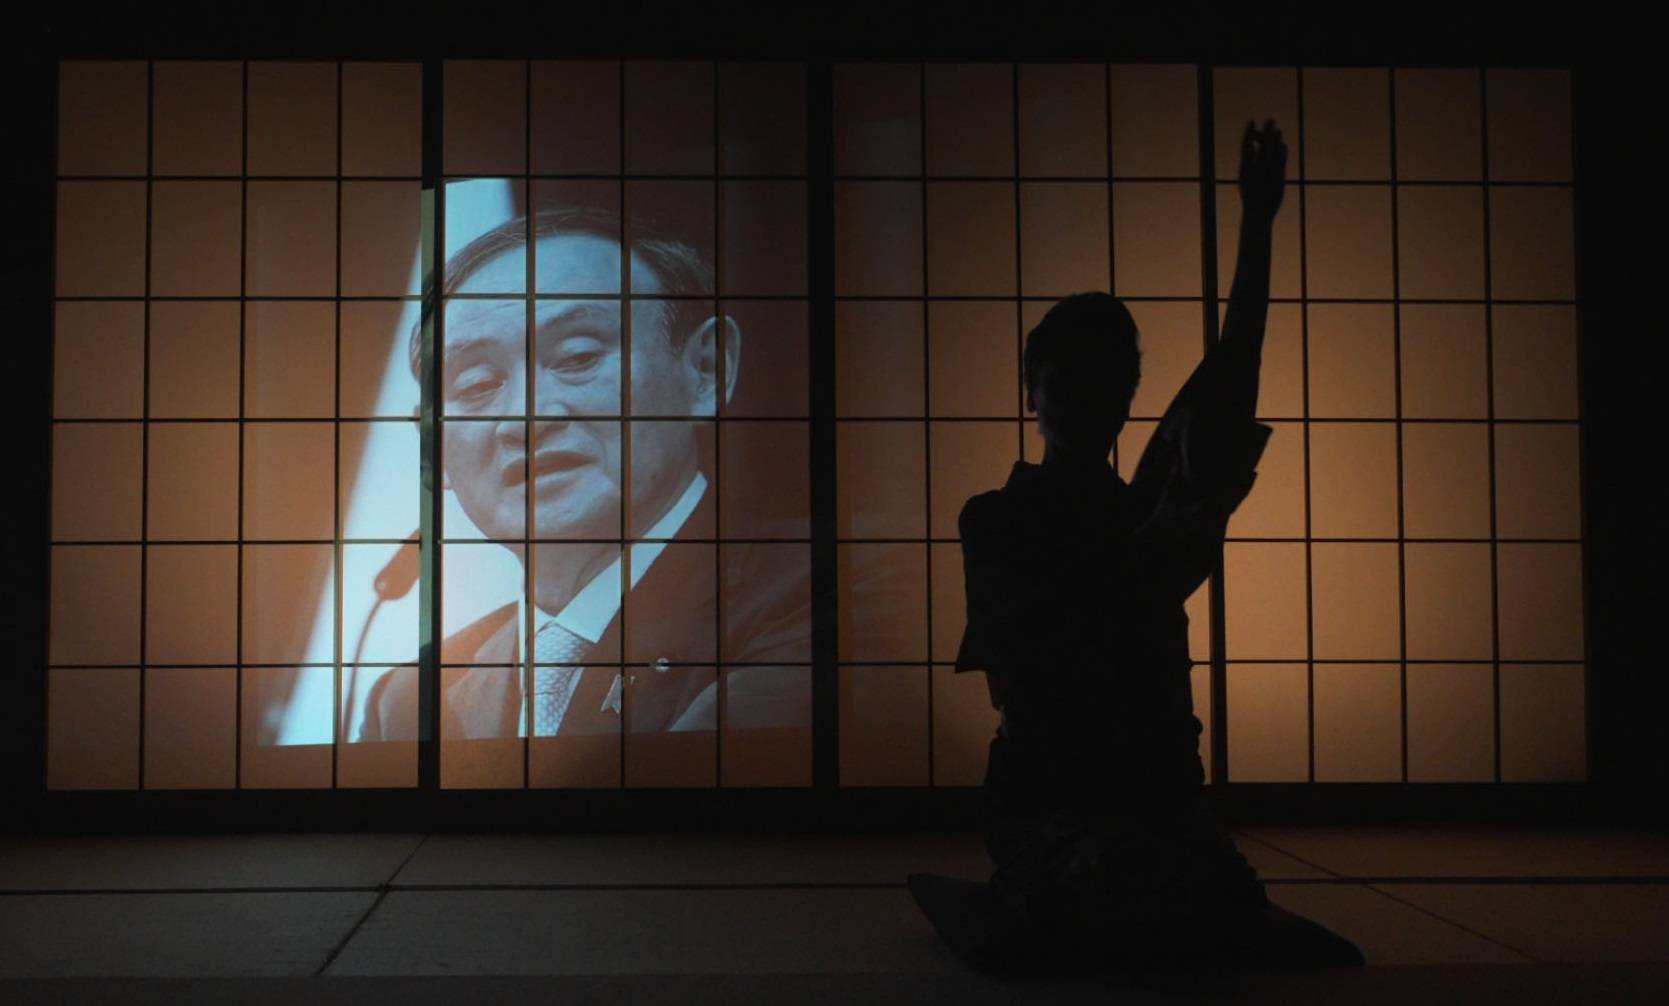 A new film by Taketo Uchiyama focuses on the career of Prime Minister Yoshihide Suga and includes animated scenes. However, the prime minister and his associates did not take part in the project. | ©2021 'PANKEKI O DOKUMI SURU' SEISAKU IINKAI